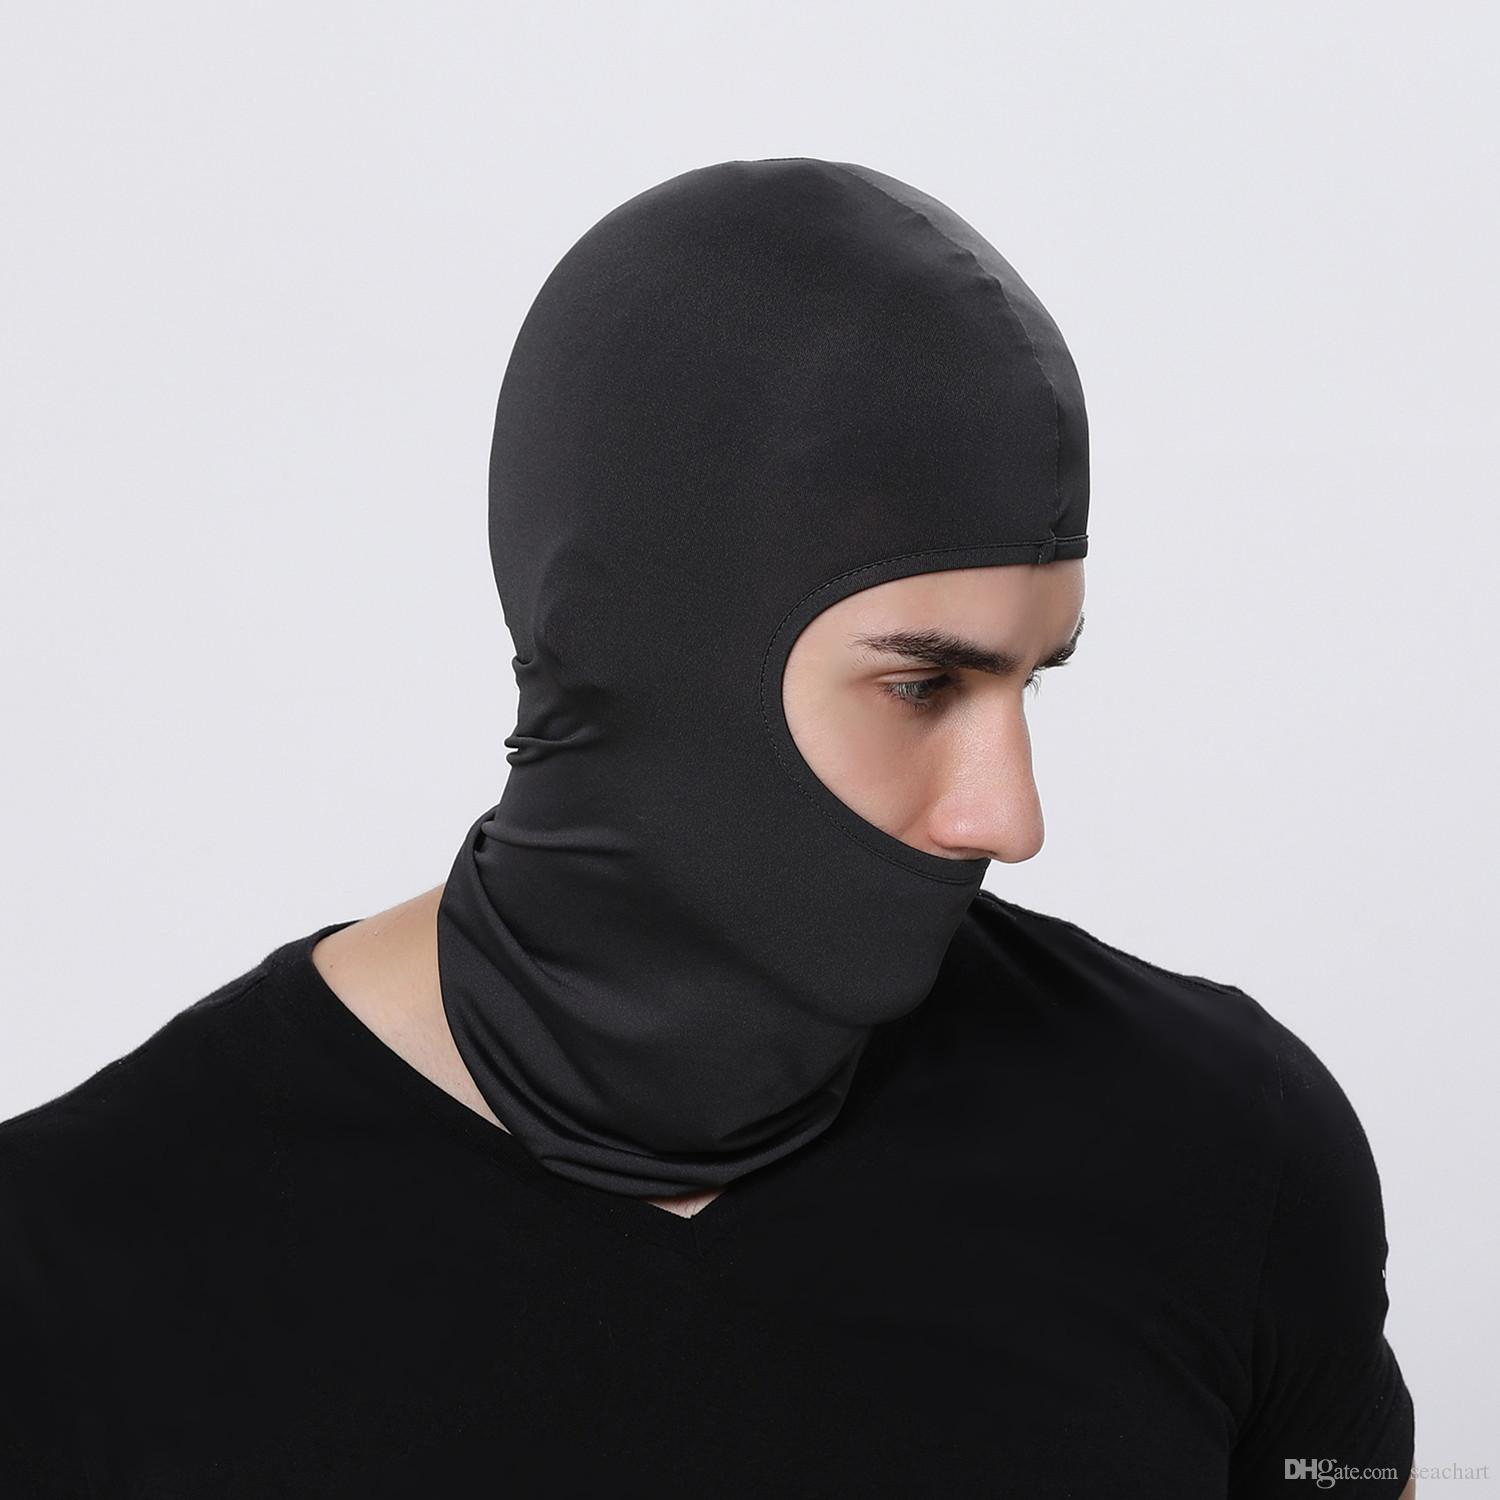 Men's Masks Hot Sele Motorcycle Face Mask Cycling Ski Neck Protecting Outdoor Balaclava Full Face Mask Ultra Thin Breathable Windproof Mask Men's Accessories